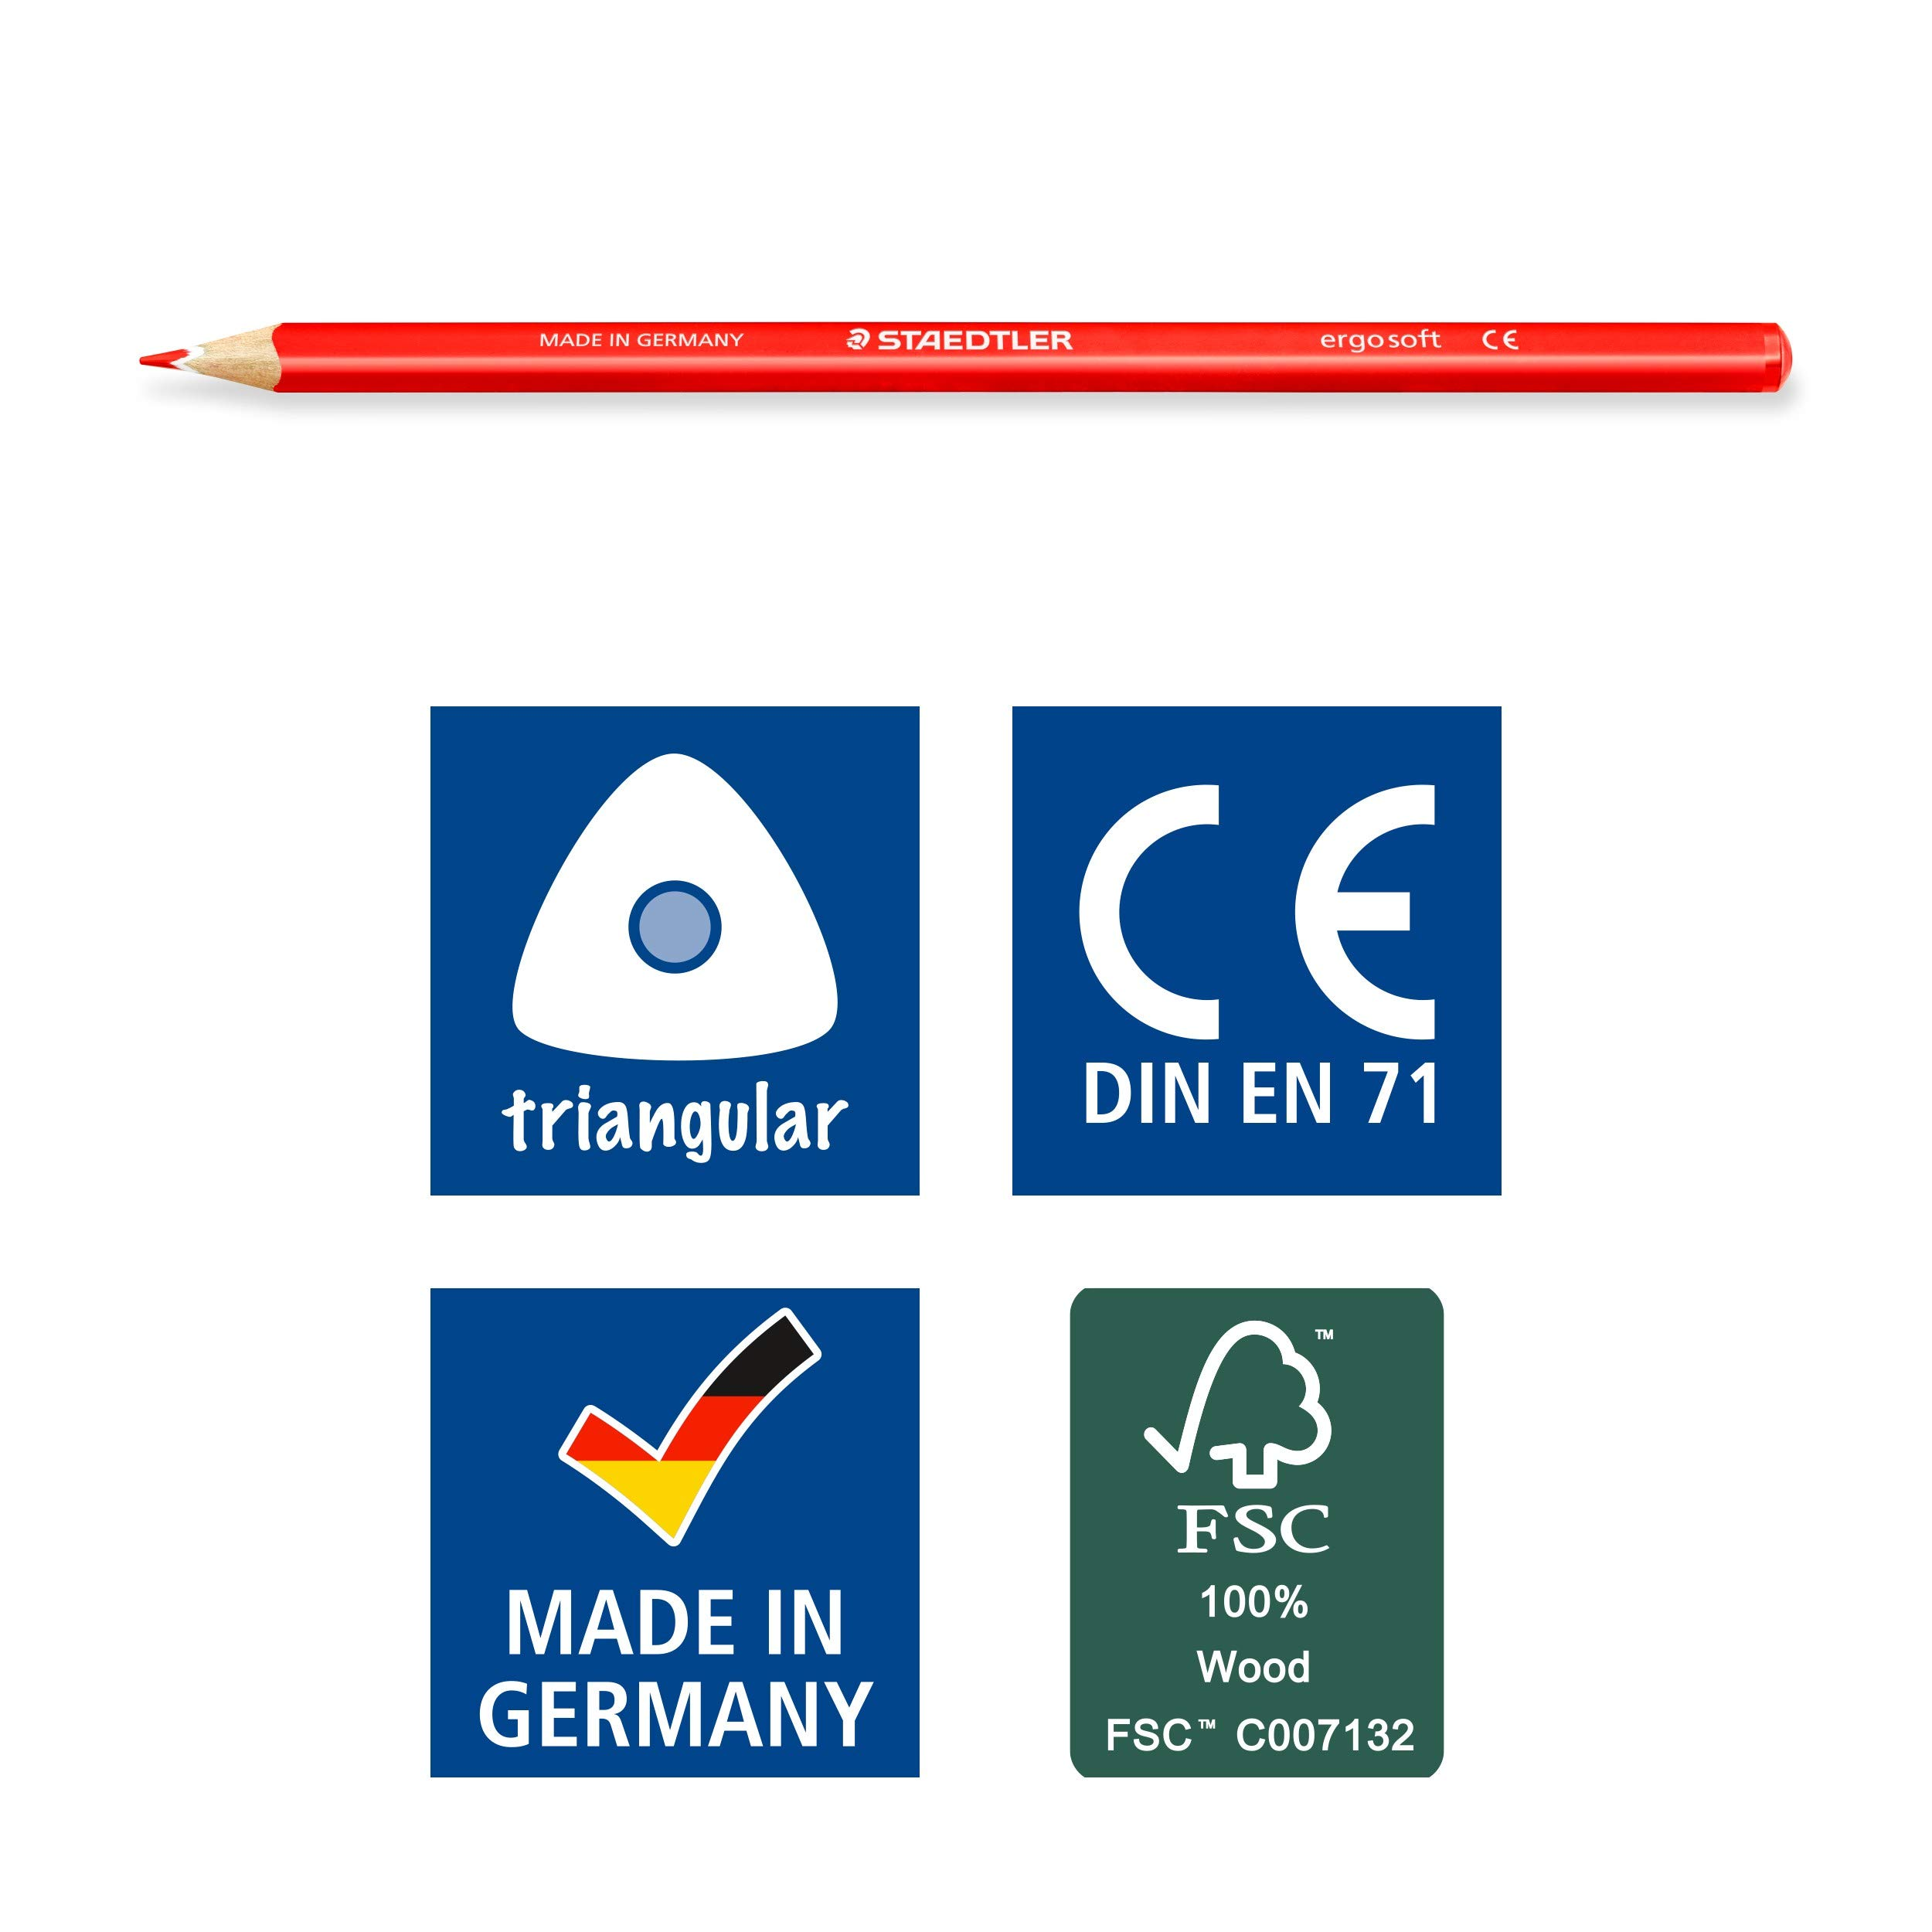 STAEDTLER 157 M36 Ergosoft Triangular Colouring Pencil, Assorted Colours, Tin of 36 by STAEDTLER (Image #6)